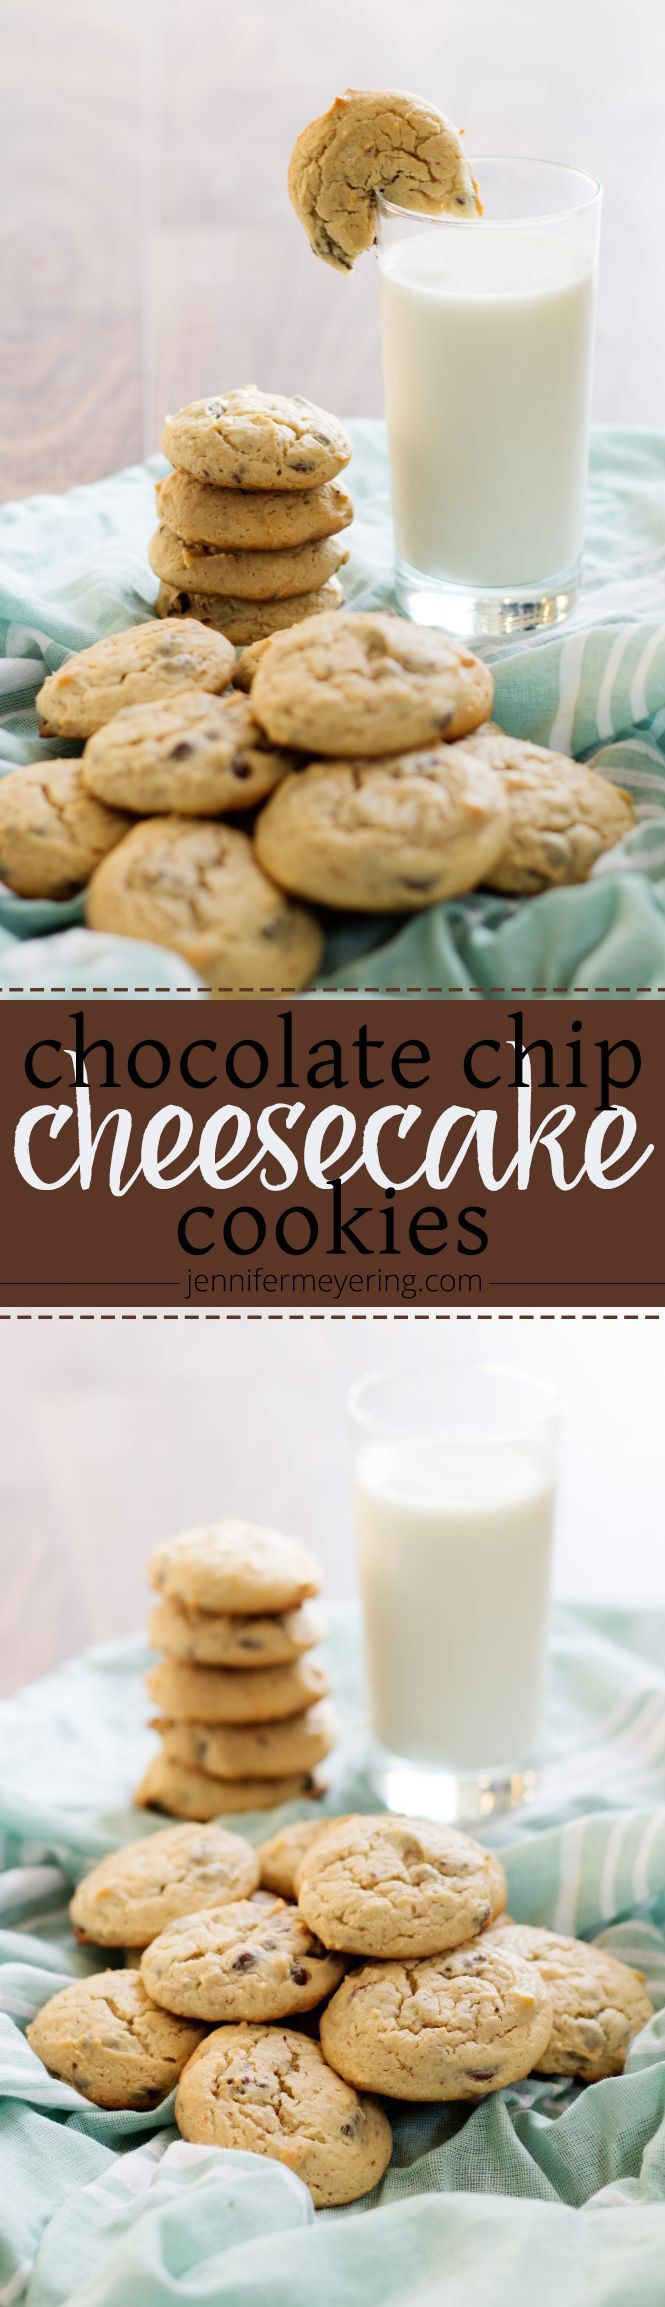 Chocolate Chip Cheesecake Cookies | JenniferMeyering.com